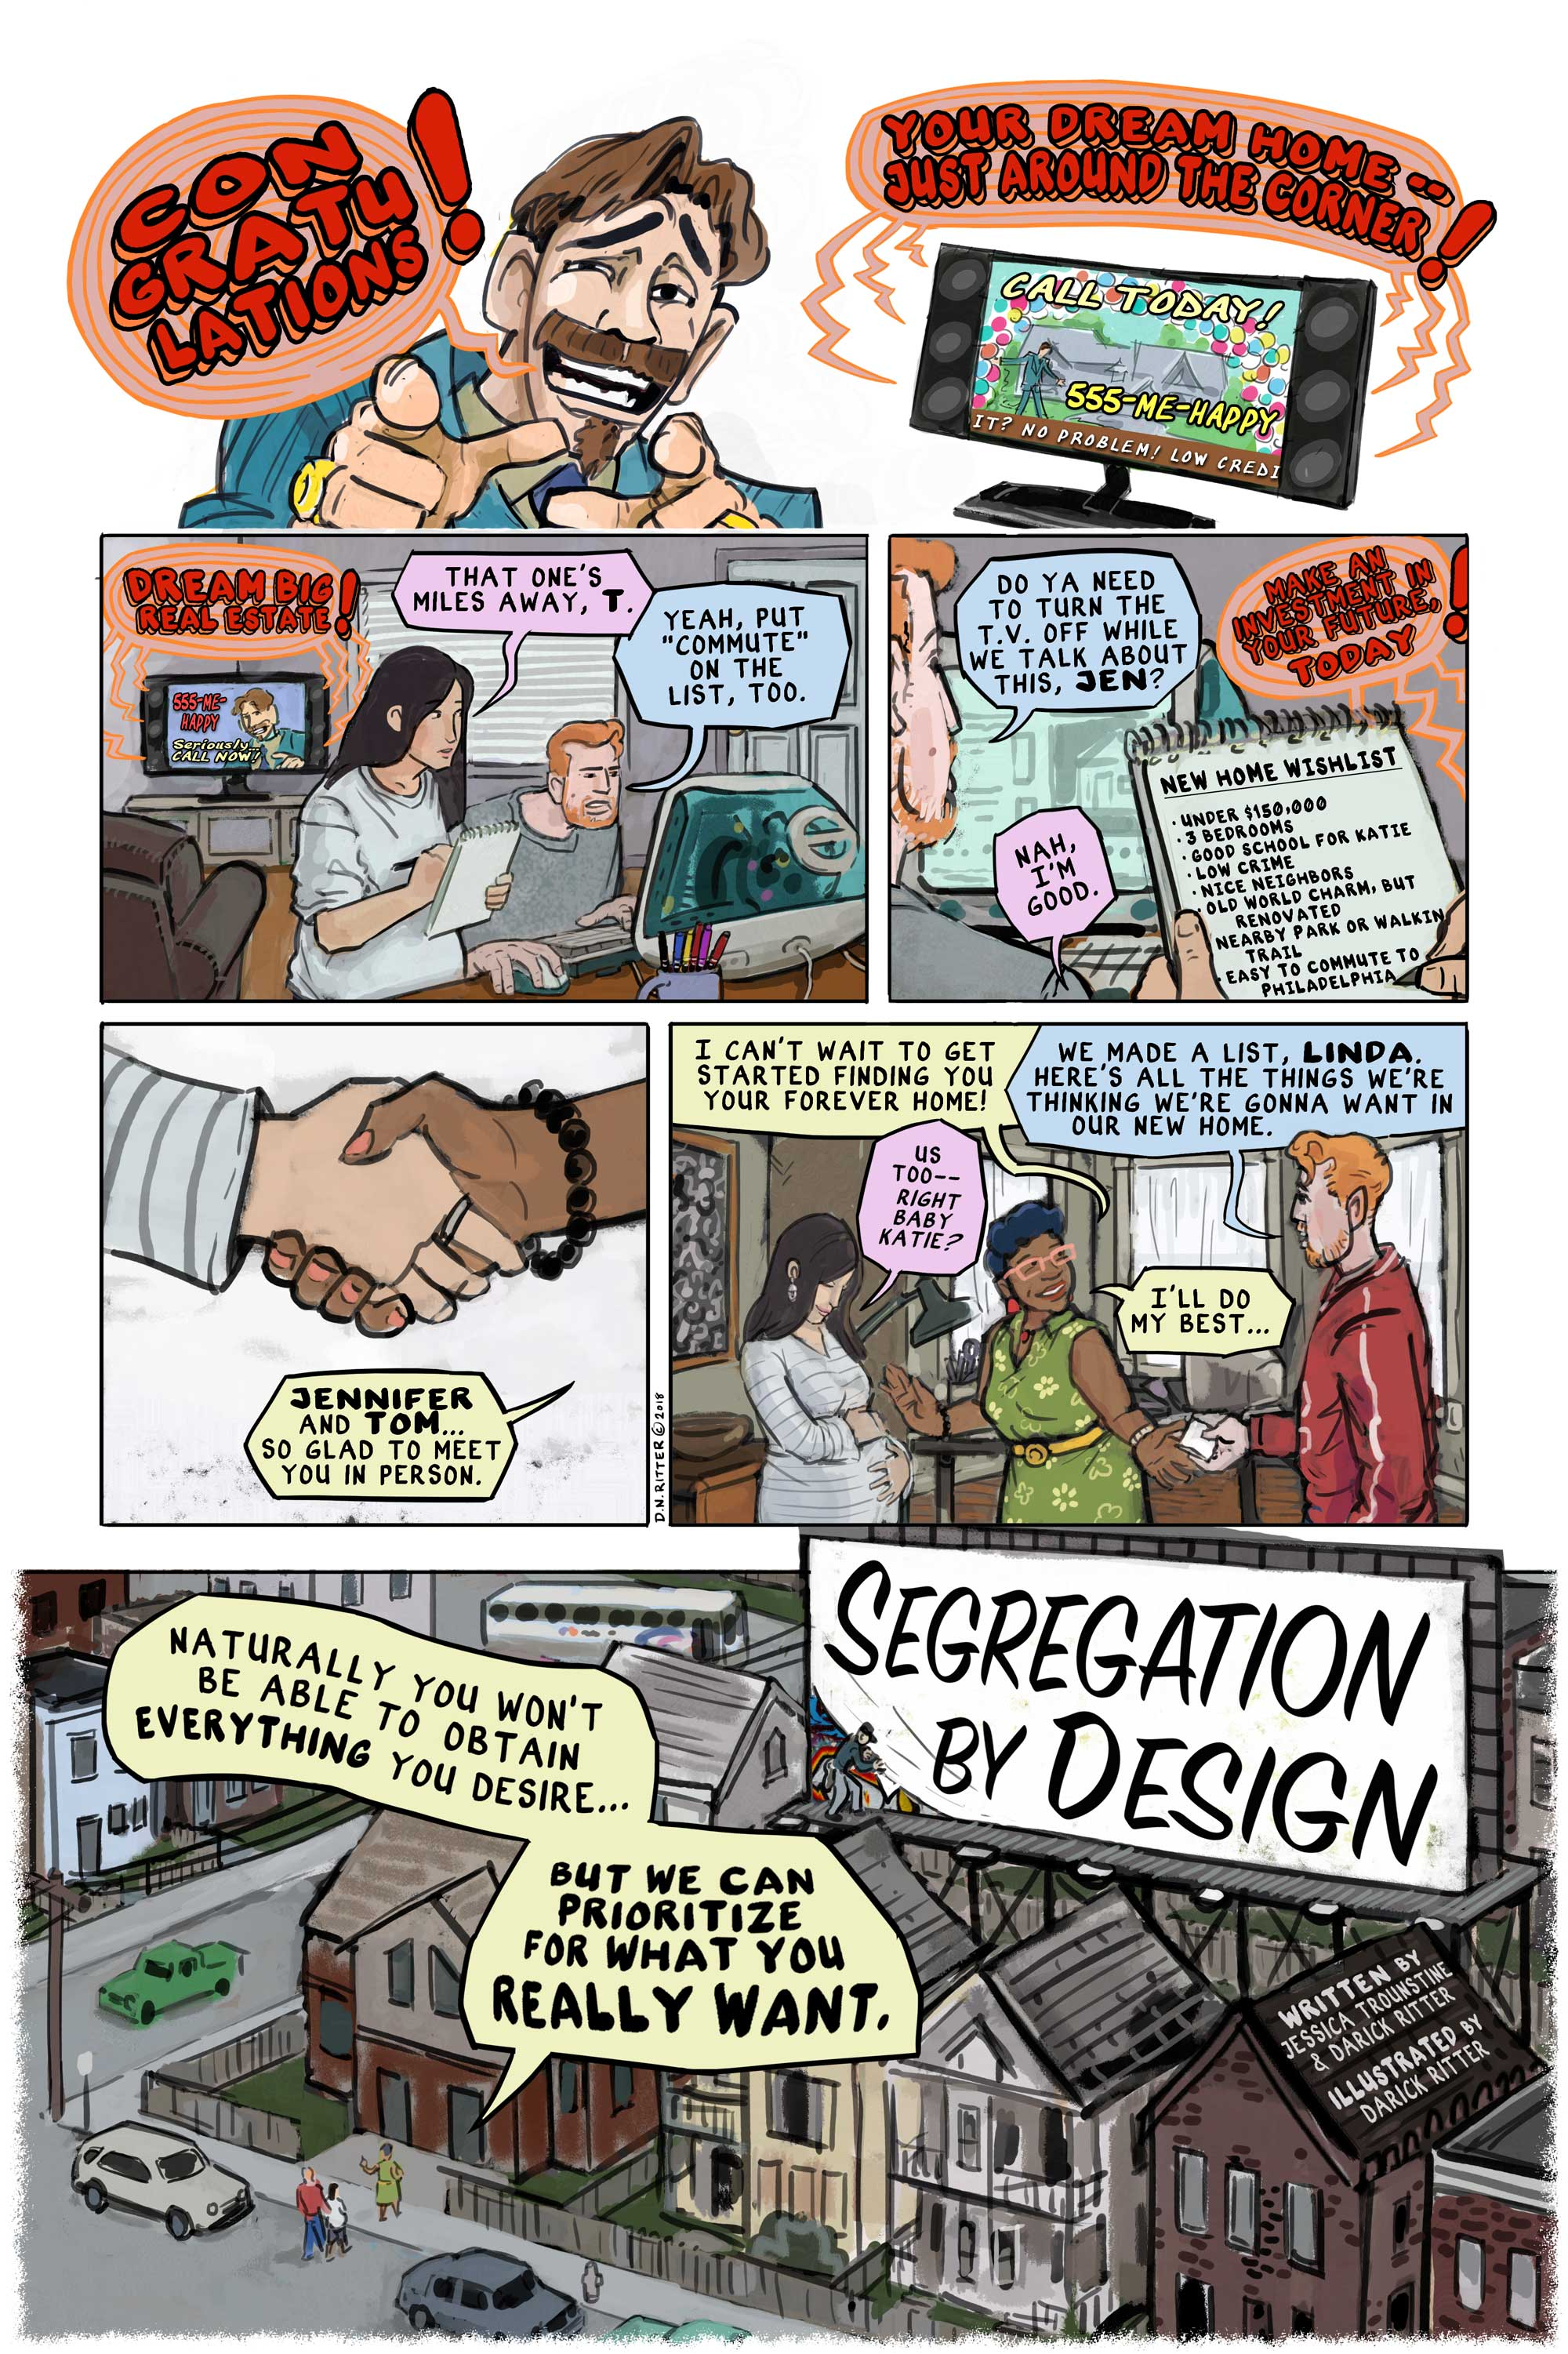 Segregation by Design (page 1)   by Darick Ritter and  Jessica Trounstine . 8-page comic prologue to academic book entitled  Segregation by Design  by Jessica Trounstine (purchase  here ).